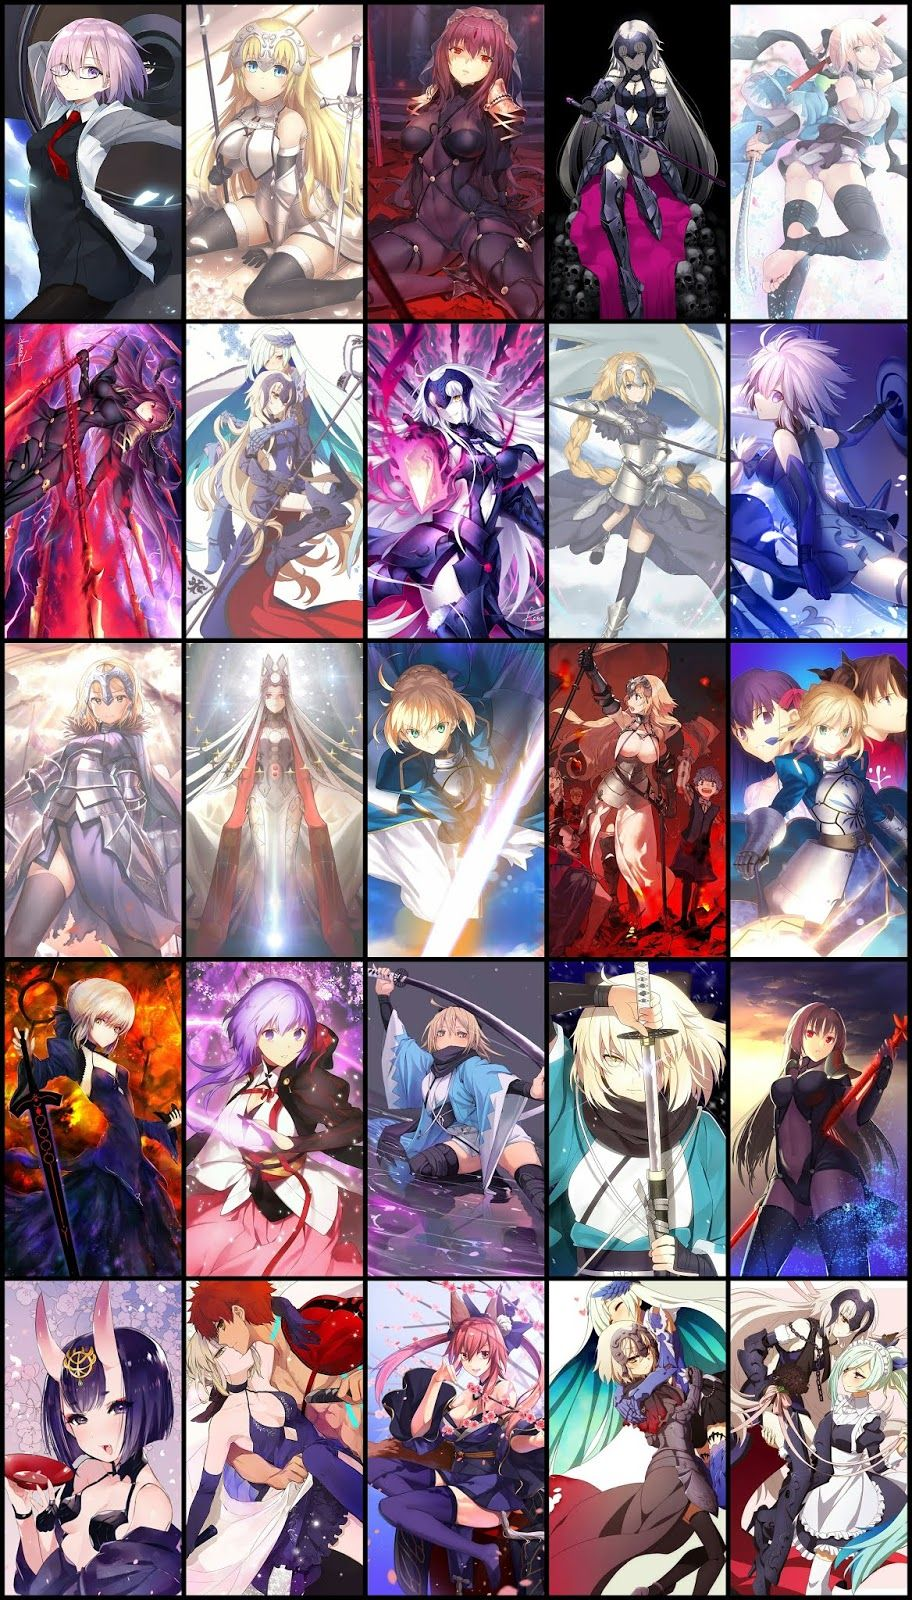 Fate Grand Order Wallpaper Pack For Mobile Phone Part 03 Anime